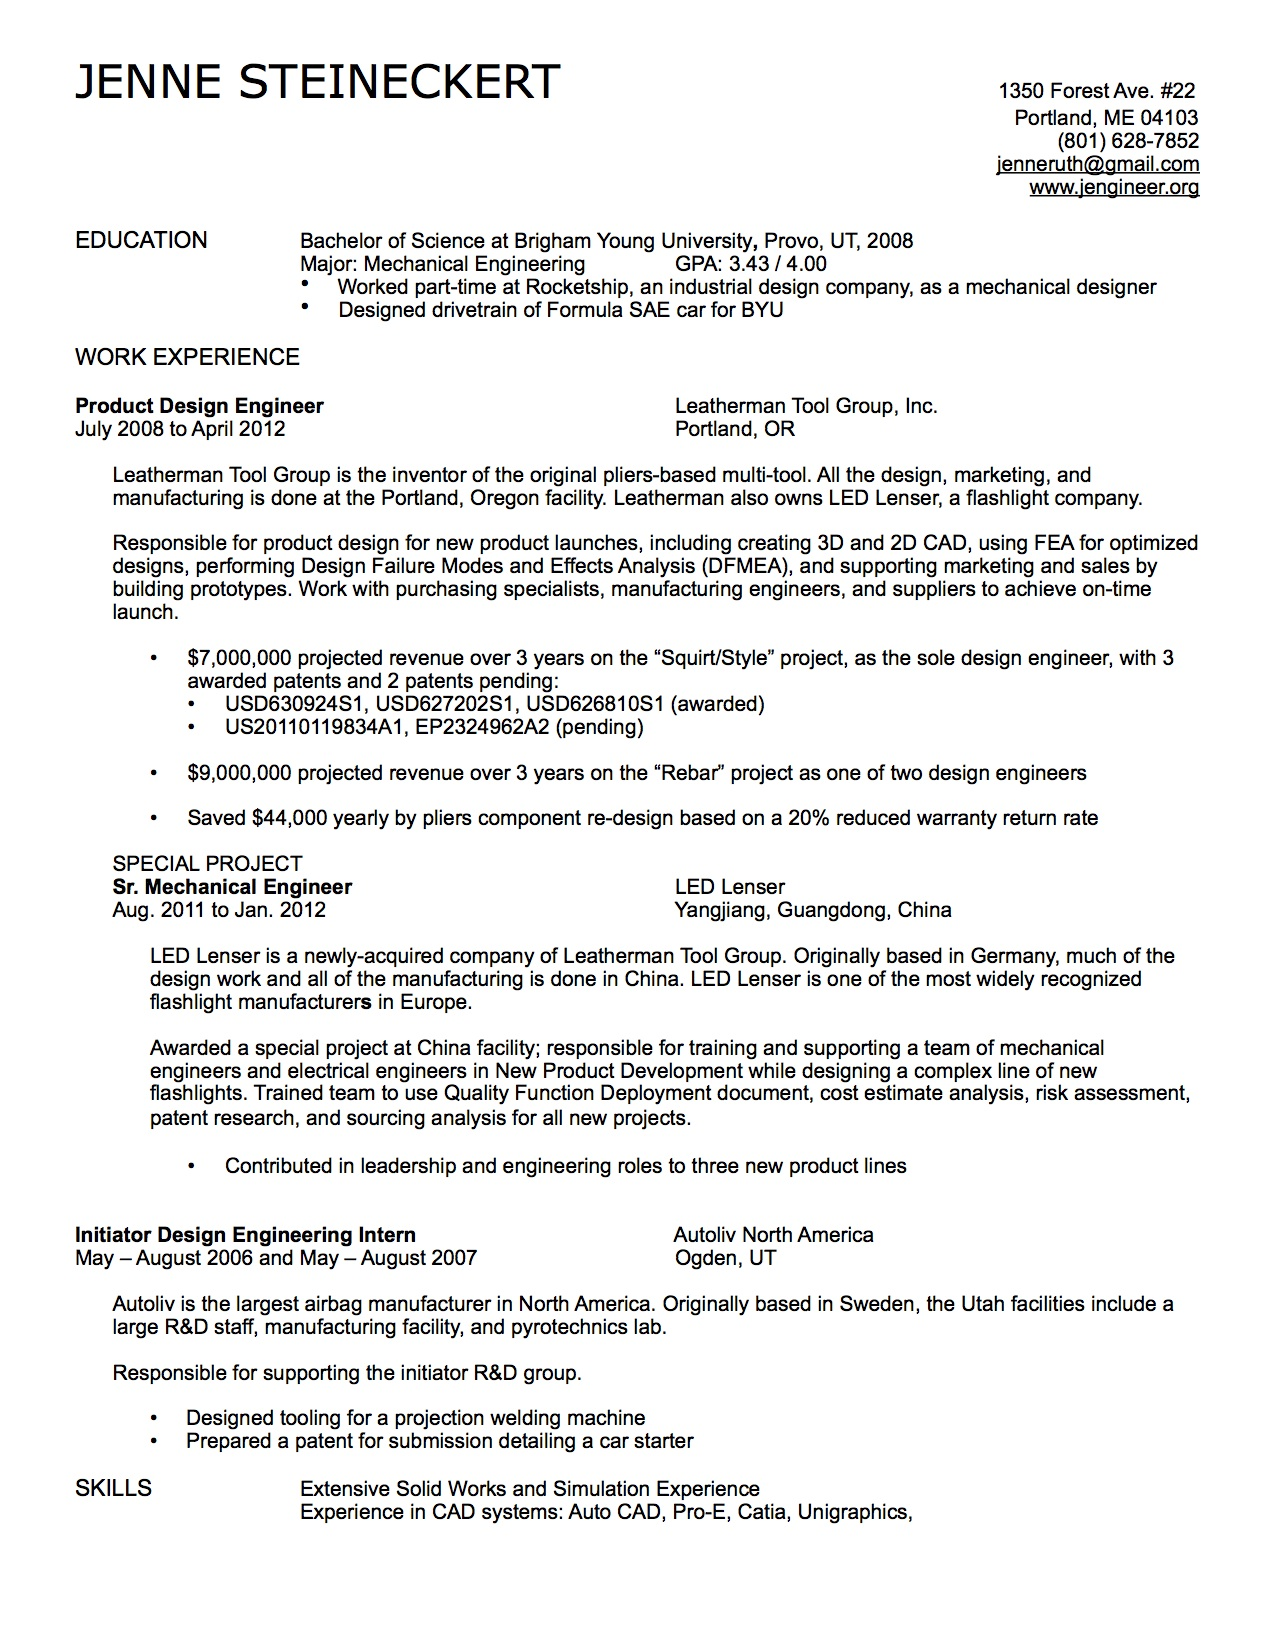 resume examples for interests sample customer service resume resume examples for interests 20 best examples of hobbies interests to put on a good hobbies